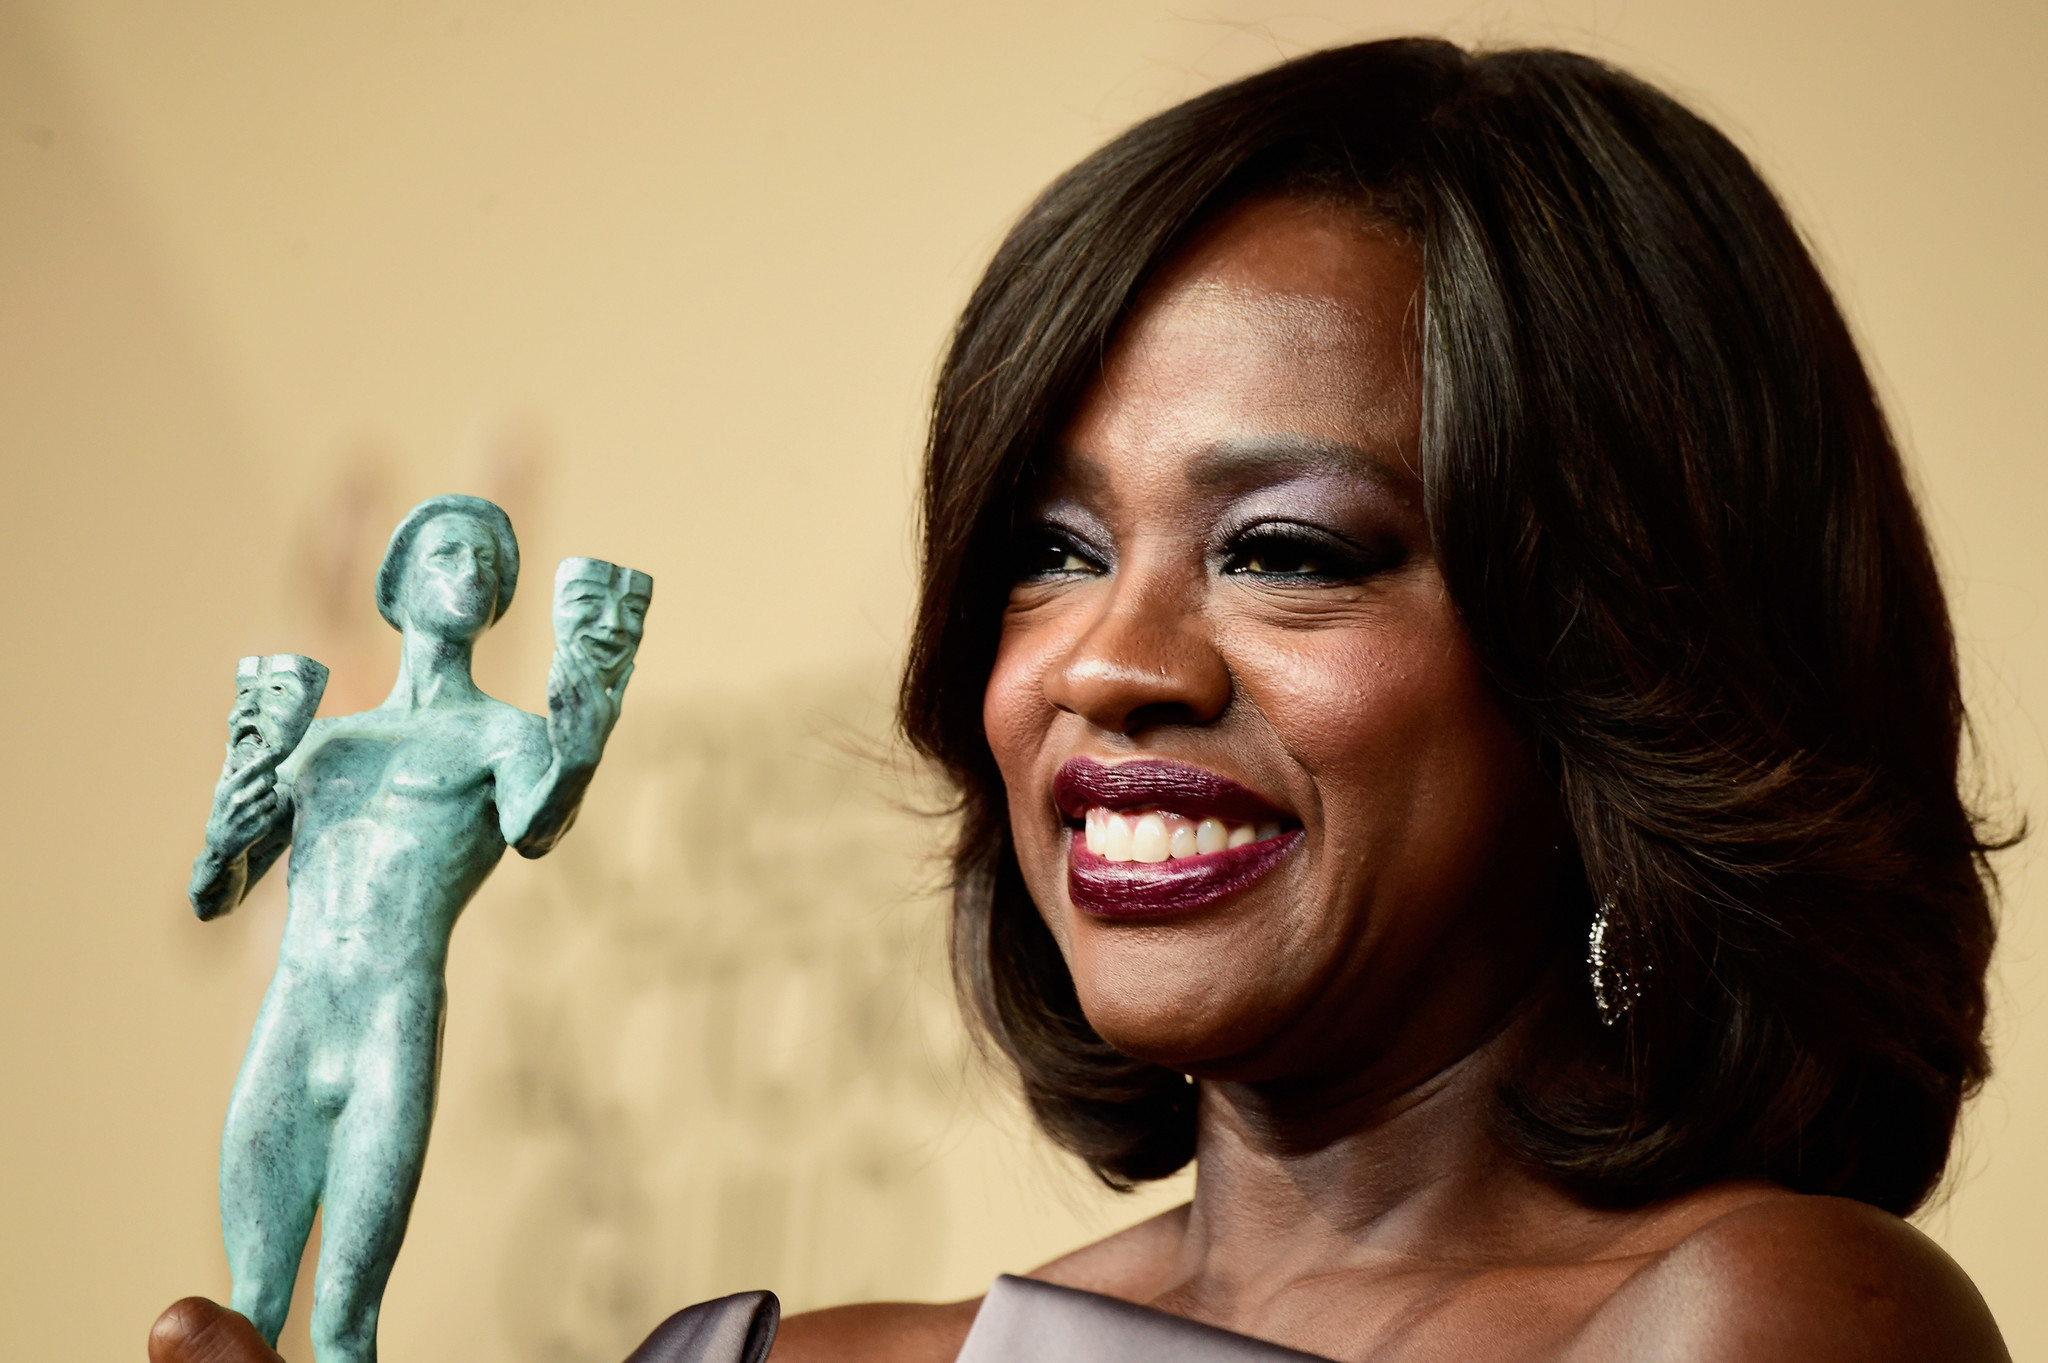 Viola Davis says 'How to Get Away with Murder' role has 'redefined' black women on television